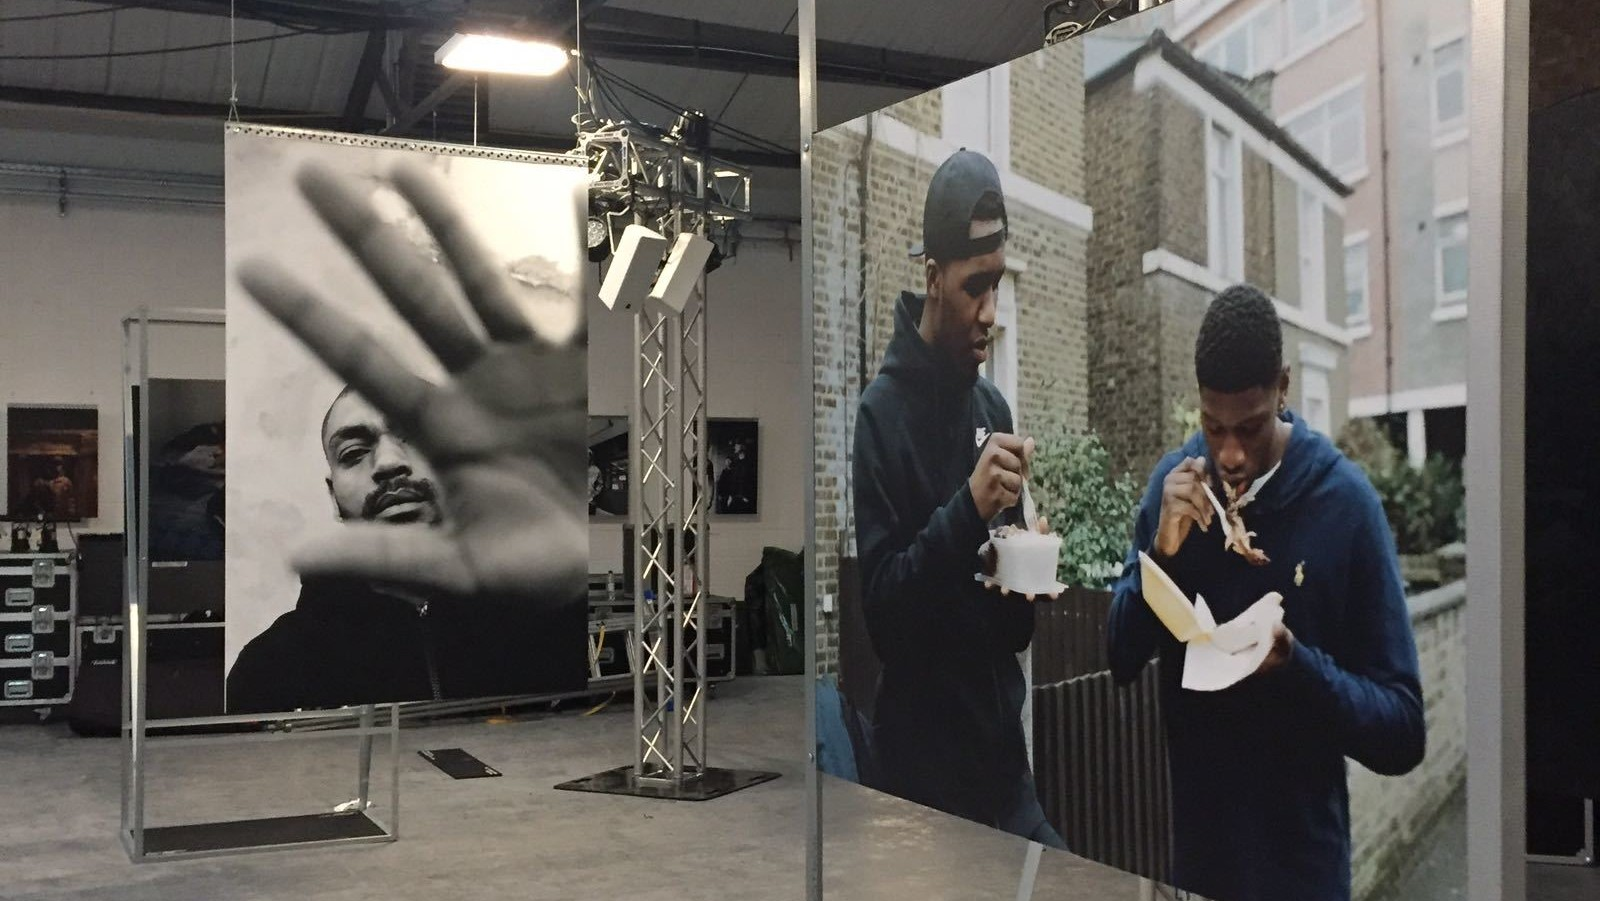 exhibition an eye on grime opens tonight in leeds